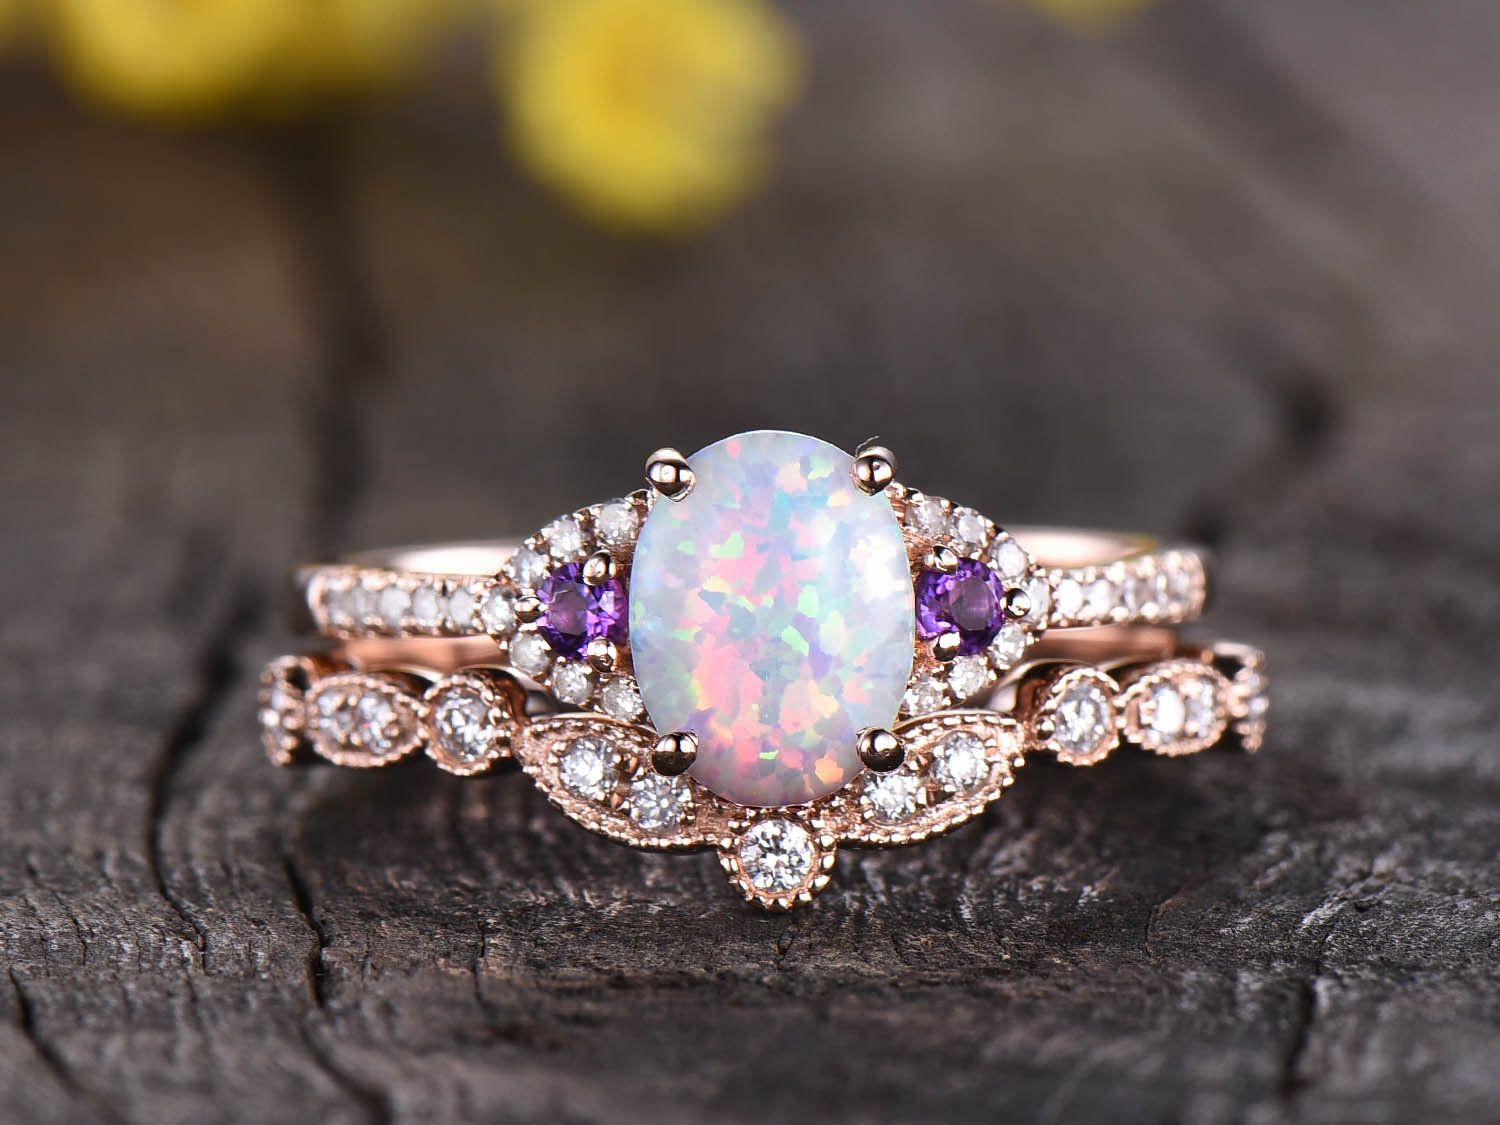 Gift For Anniversary. Fire Opal Engagement Weeding Bridal  Ring For Her Marquise Shape Filigree Ring Vintage Art Deco Moissanite Ring